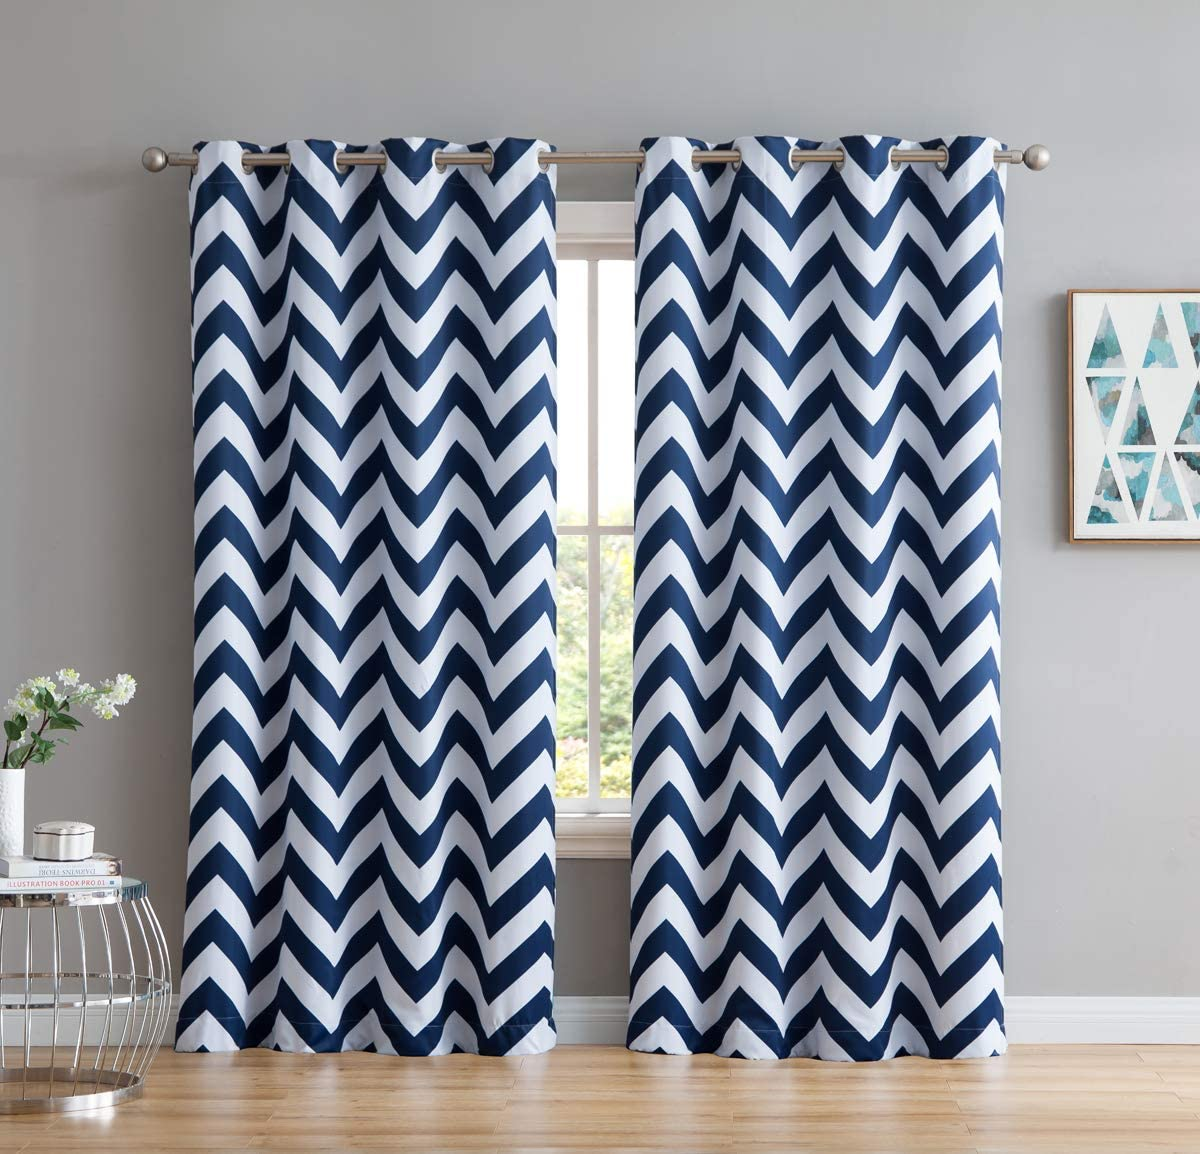 Amazon Com Hlc Me Chevron Print Thermal Insulated Energy Efficient Room Darkening Blackout Window Curtain Grommet Top Panels For Bedroom Nursery Set Of 2 52 W X 84 L Navy Blue Home